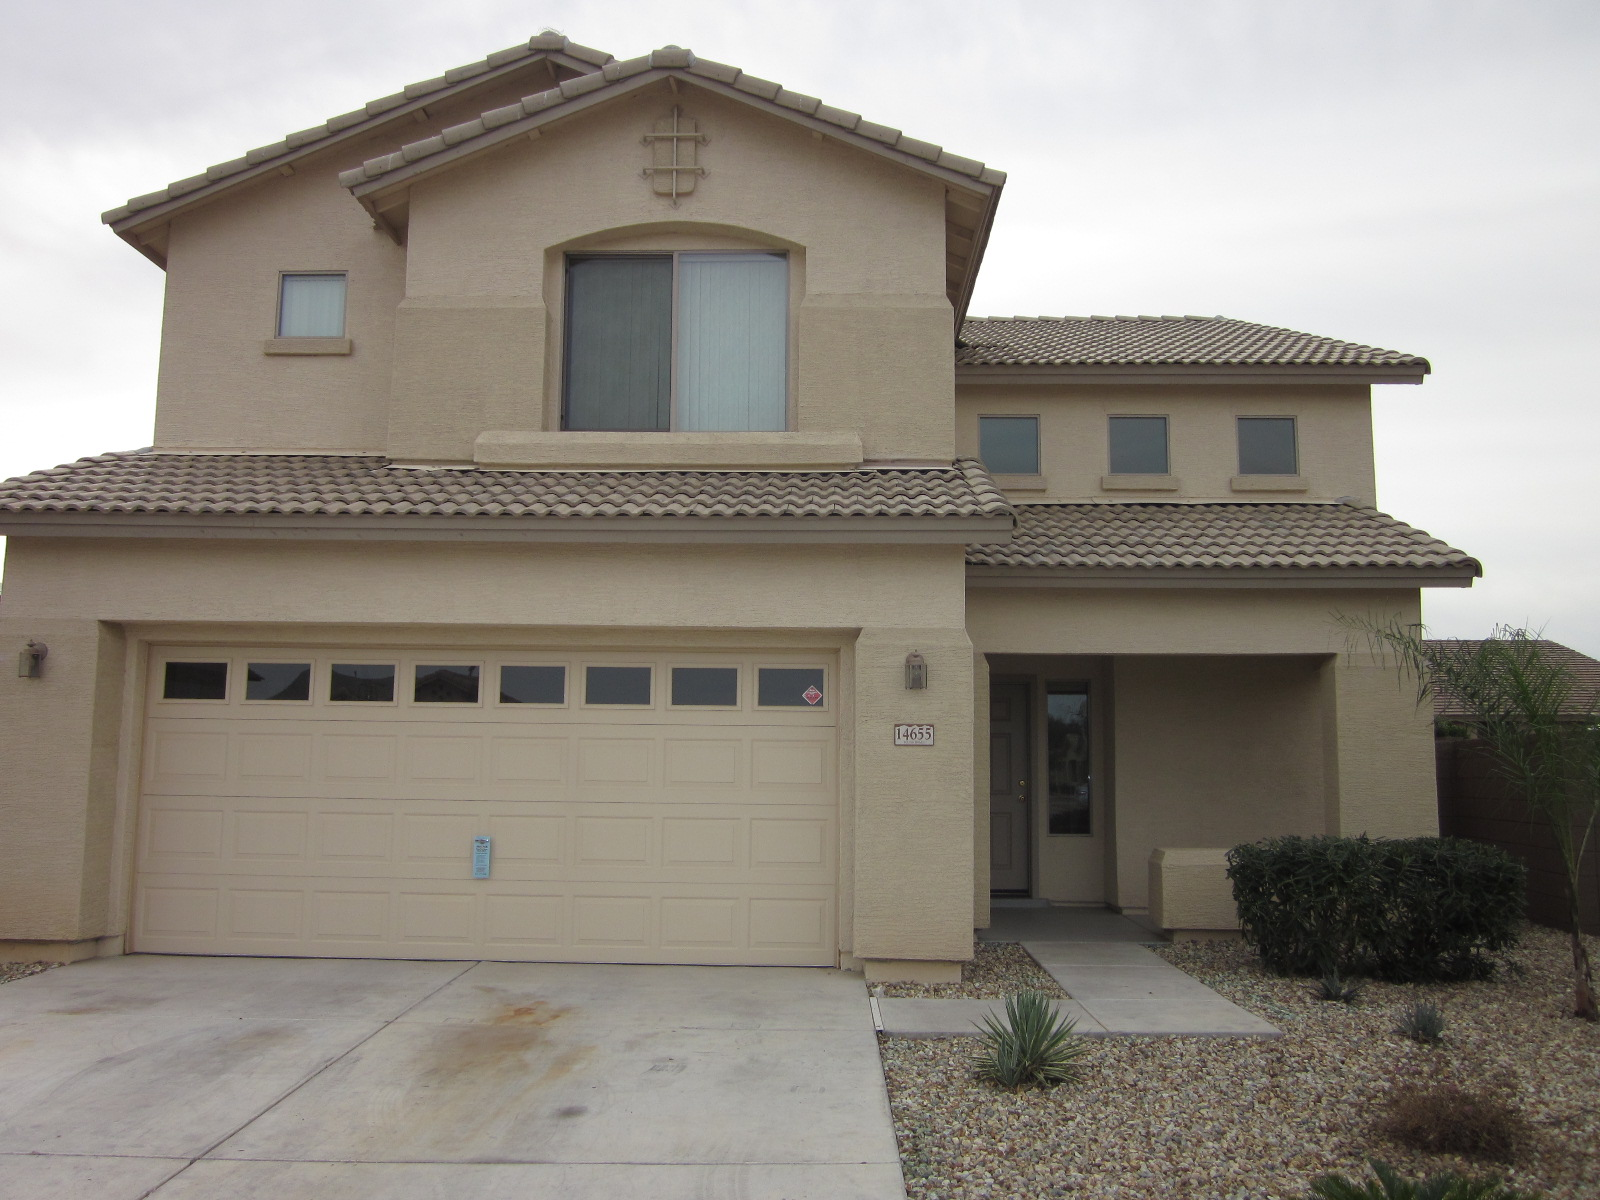 Home for Lease in Surprise AZ